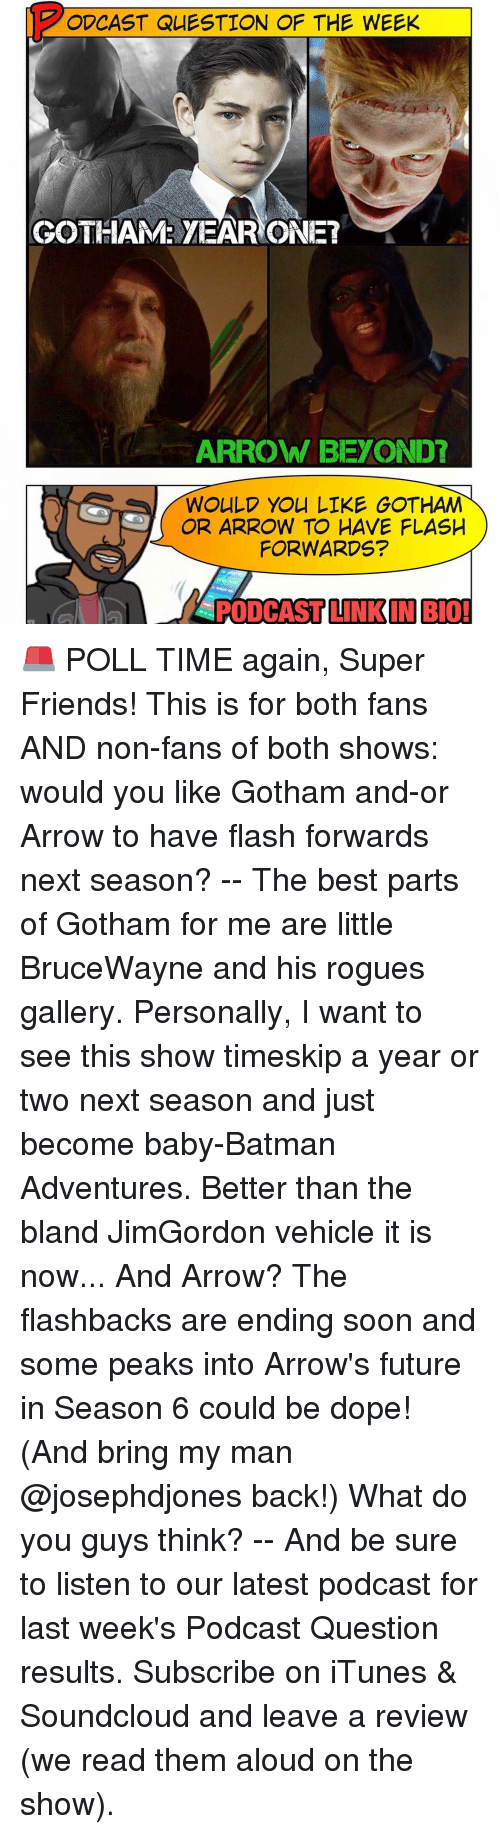 Memes, iTunes, and Rogue: ODCAST QUESTION OF THE WEEK  GOTHAM YEAR ONE?  ARROW BEYOND?  WOULD YOU LIKE GOTHAM  OR ARROW TO HAVE FLASH  FORWARDS?  LINKIN BIO 🚨 POLL TIME again, Super Friends! This is for both fans AND non-fans of both shows: would you like Gotham and-or Arrow to have flash forwards next season? -- The best parts of Gotham for me are little BruceWayne and his rogues gallery. Personally, I want to see this show timeskip a year or two next season and just become baby-Batman Adventures. Better than the bland JimGordon vehicle it is now... And Arrow? The flashbacks are ending soon and some peaks into Arrow's future in Season 6 could be dope! (And bring my man @josephdjones back!) What do you guys think? -- And be sure to listen to our latest podcast for last week's Podcast Question results. Subscribe on iTunes & Soundcloud and leave a review (we read them aloud on the show).